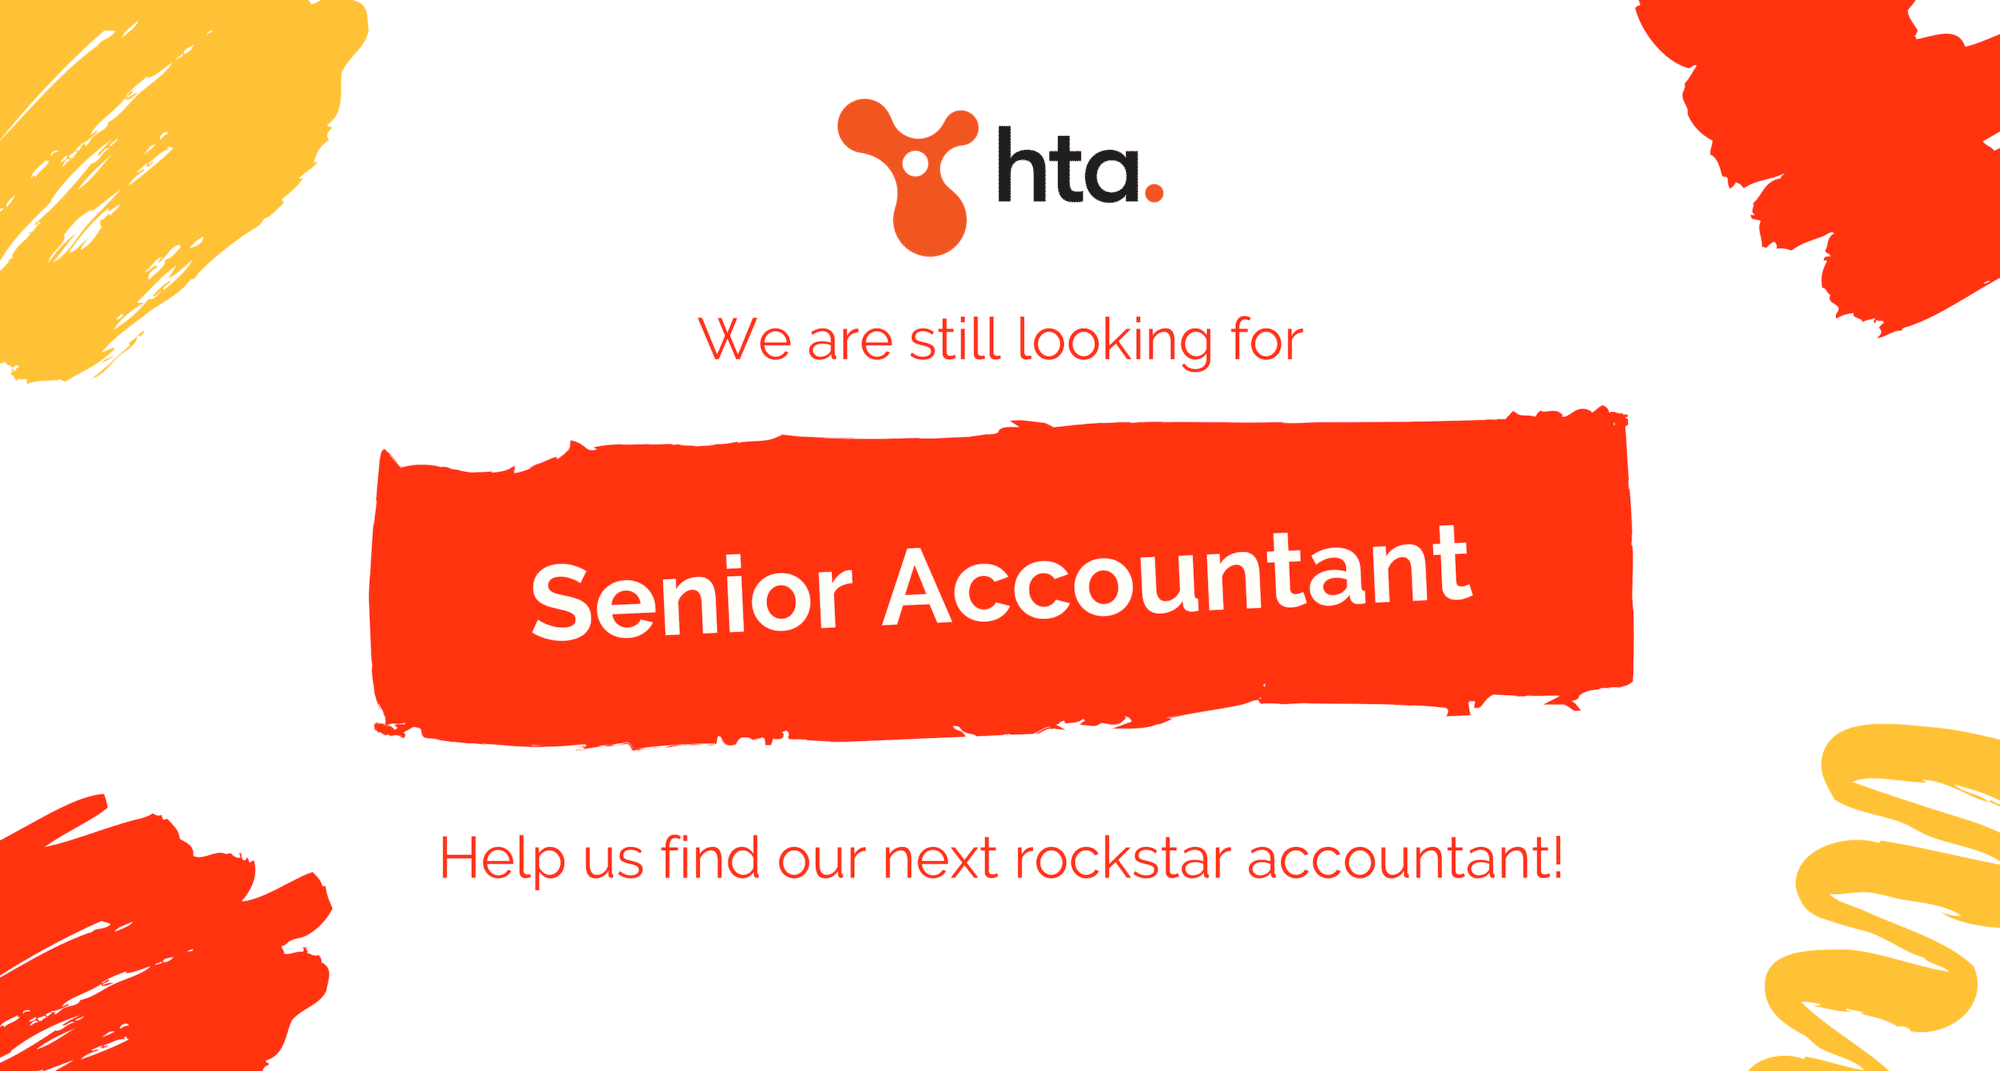 We found 1 and still looking for another ROCKSTAR ACCOUNTANT!